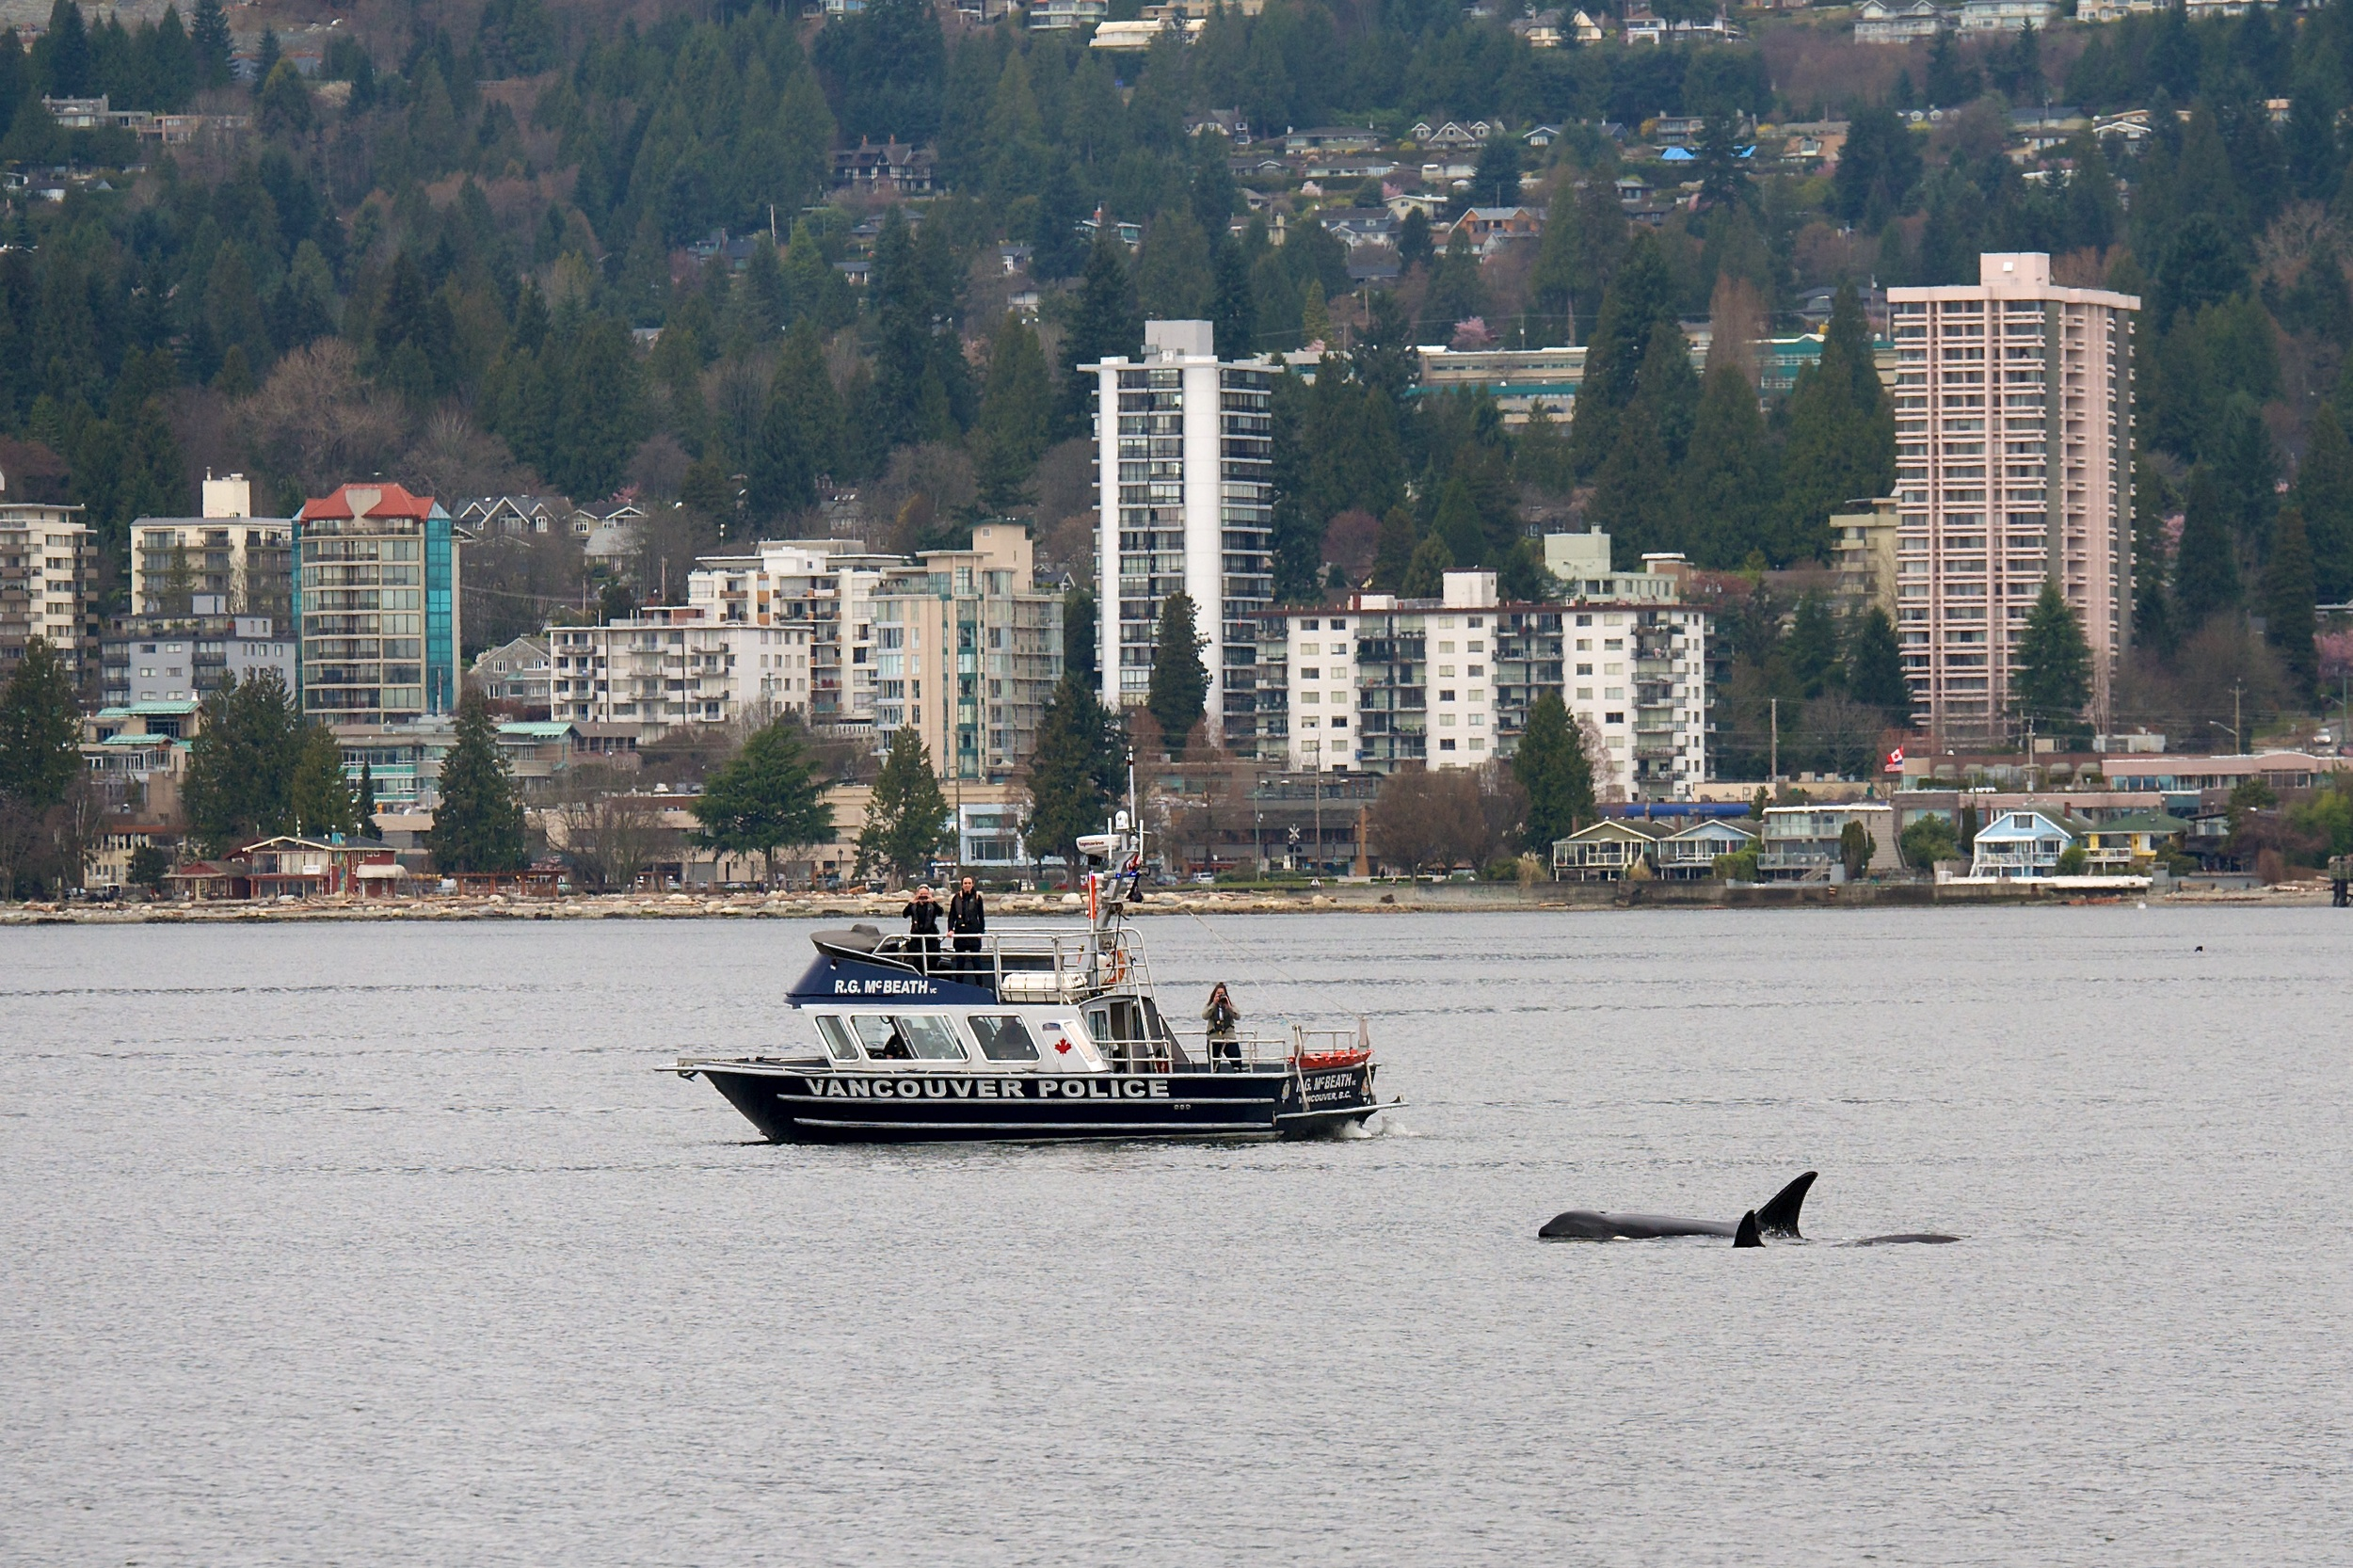 Police boat following the orcas